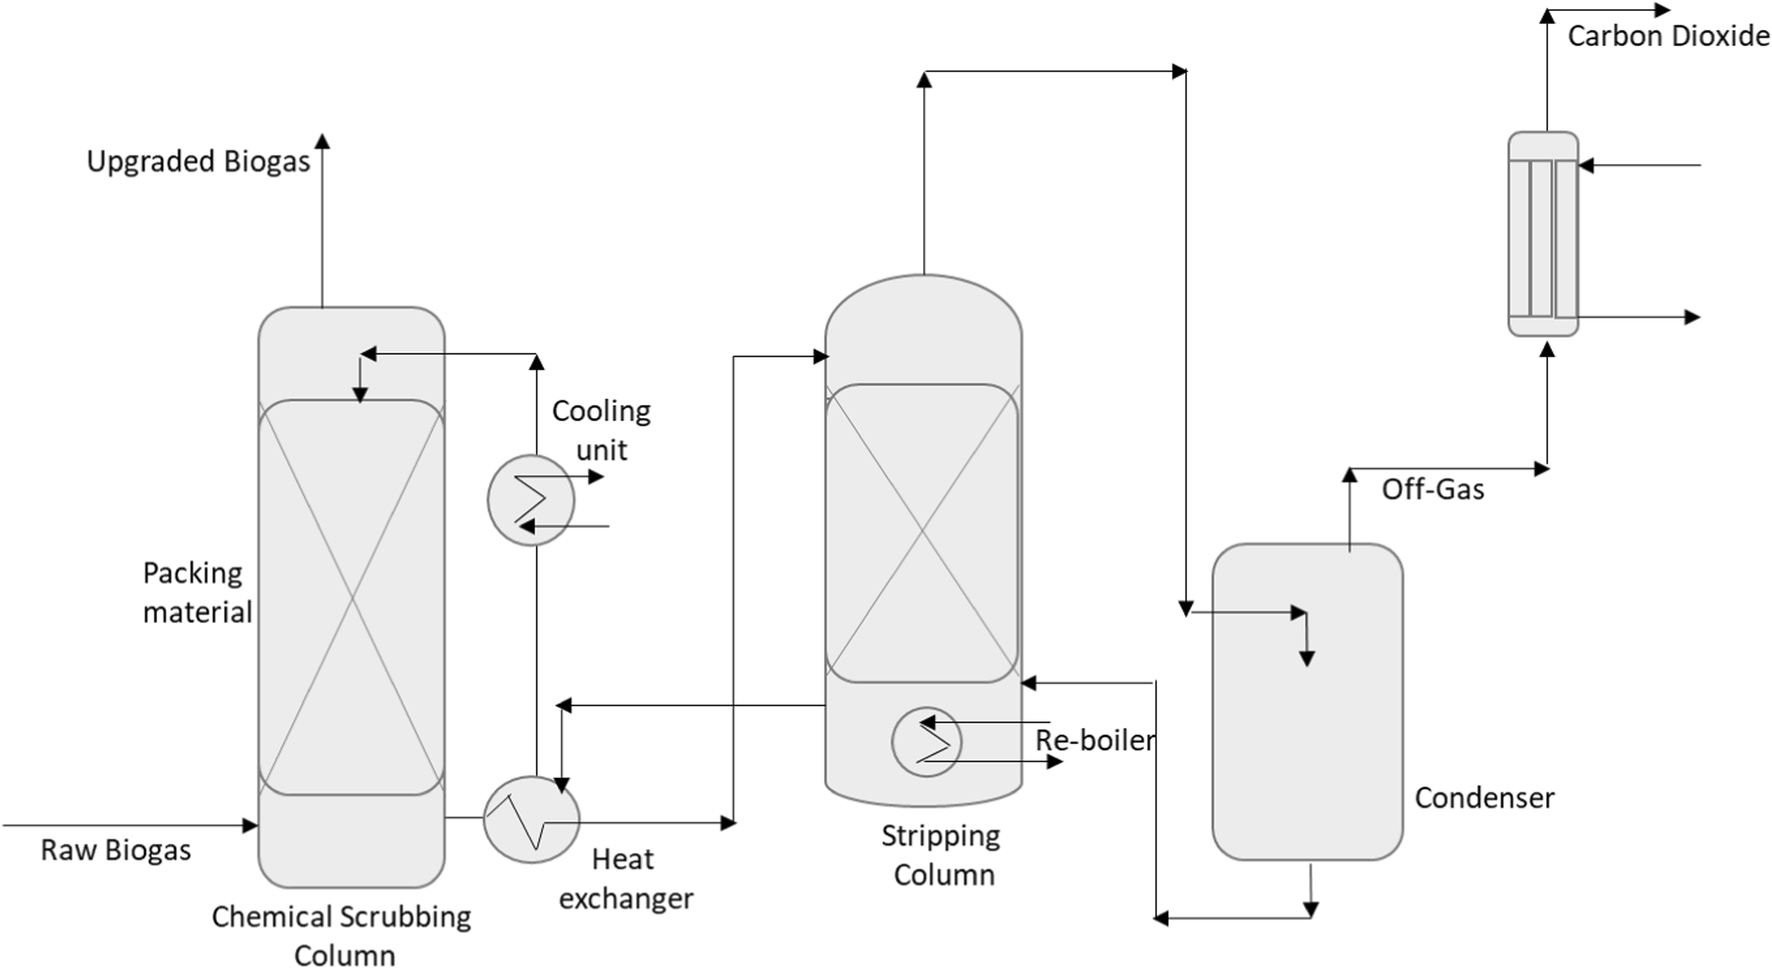 Evaluation of biogas upgrading technologies and future